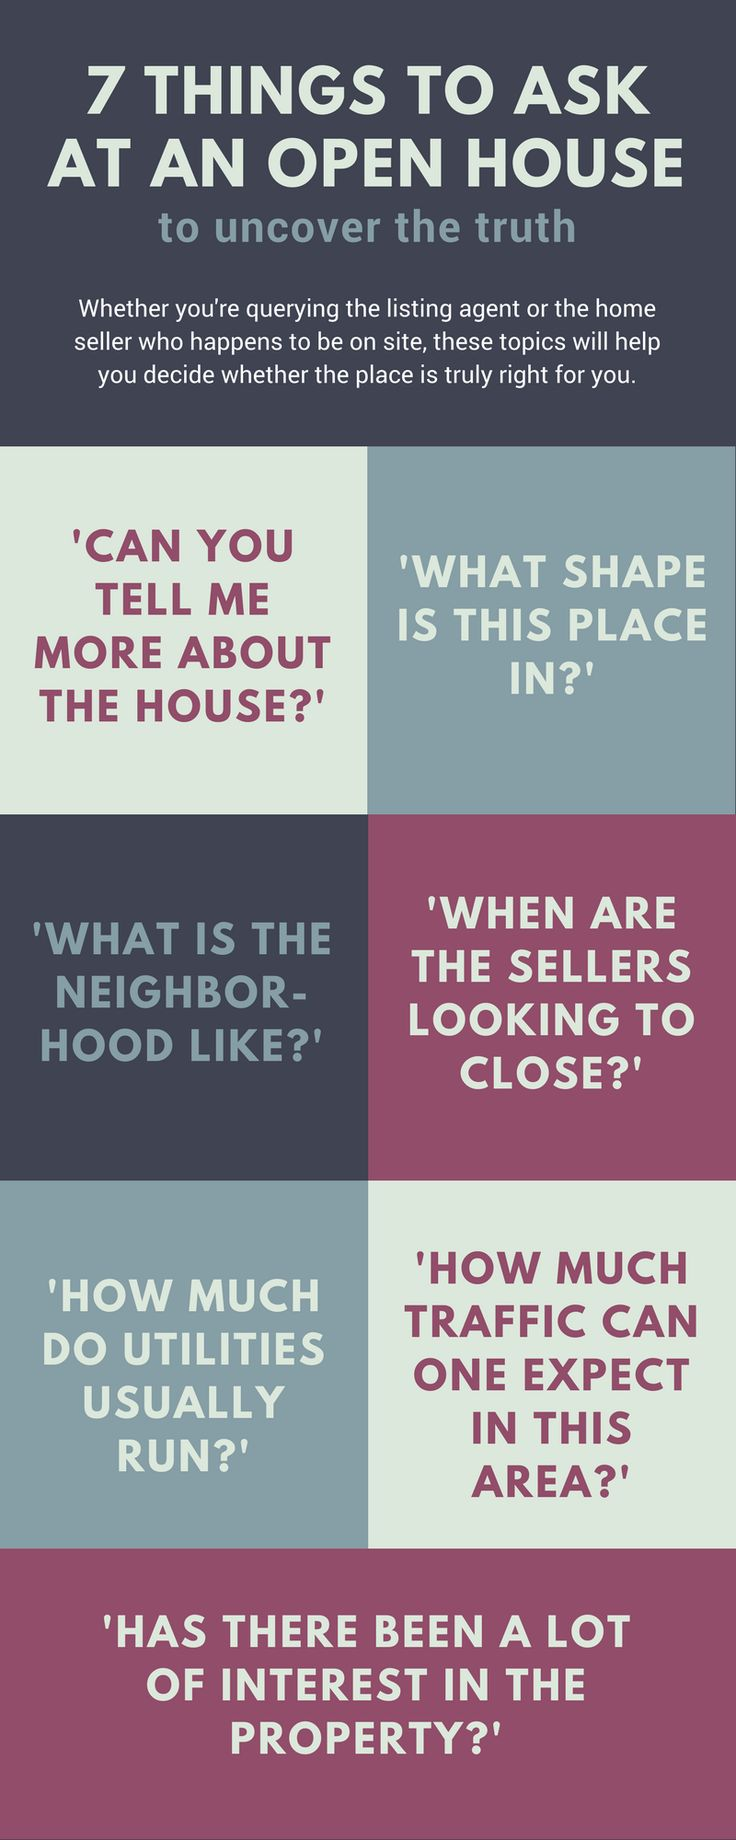 7 Questions To Ask At An Open House That Uncover The Truth, Warts And All